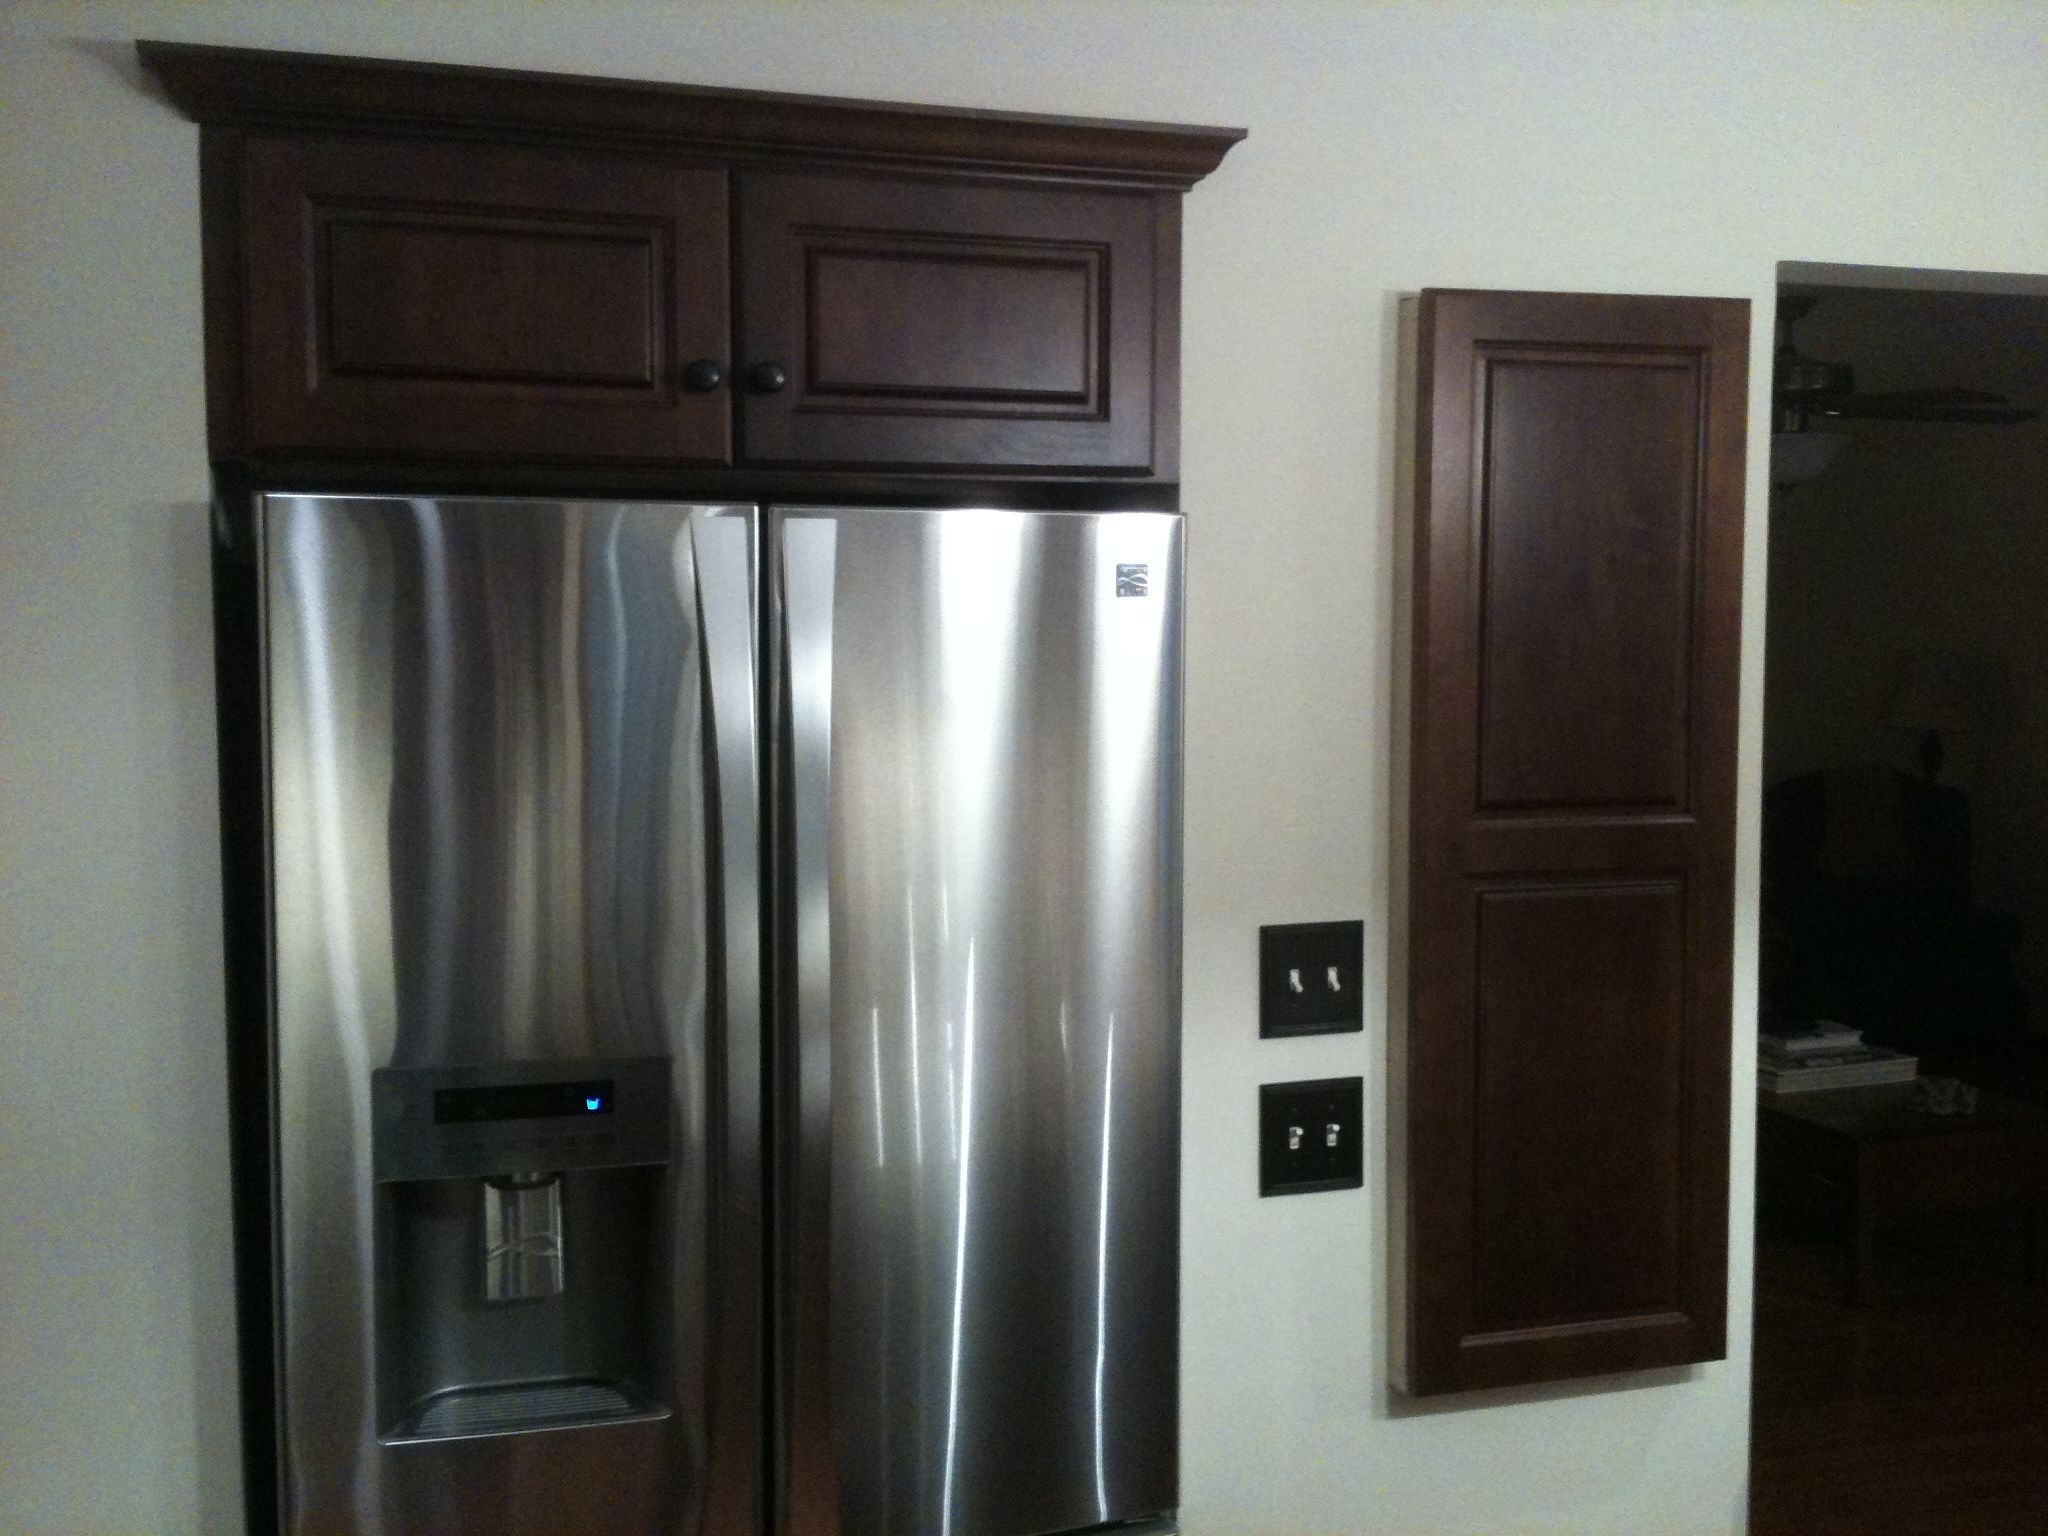 Recessed Fridge W Wall Cabinet Inset Above It